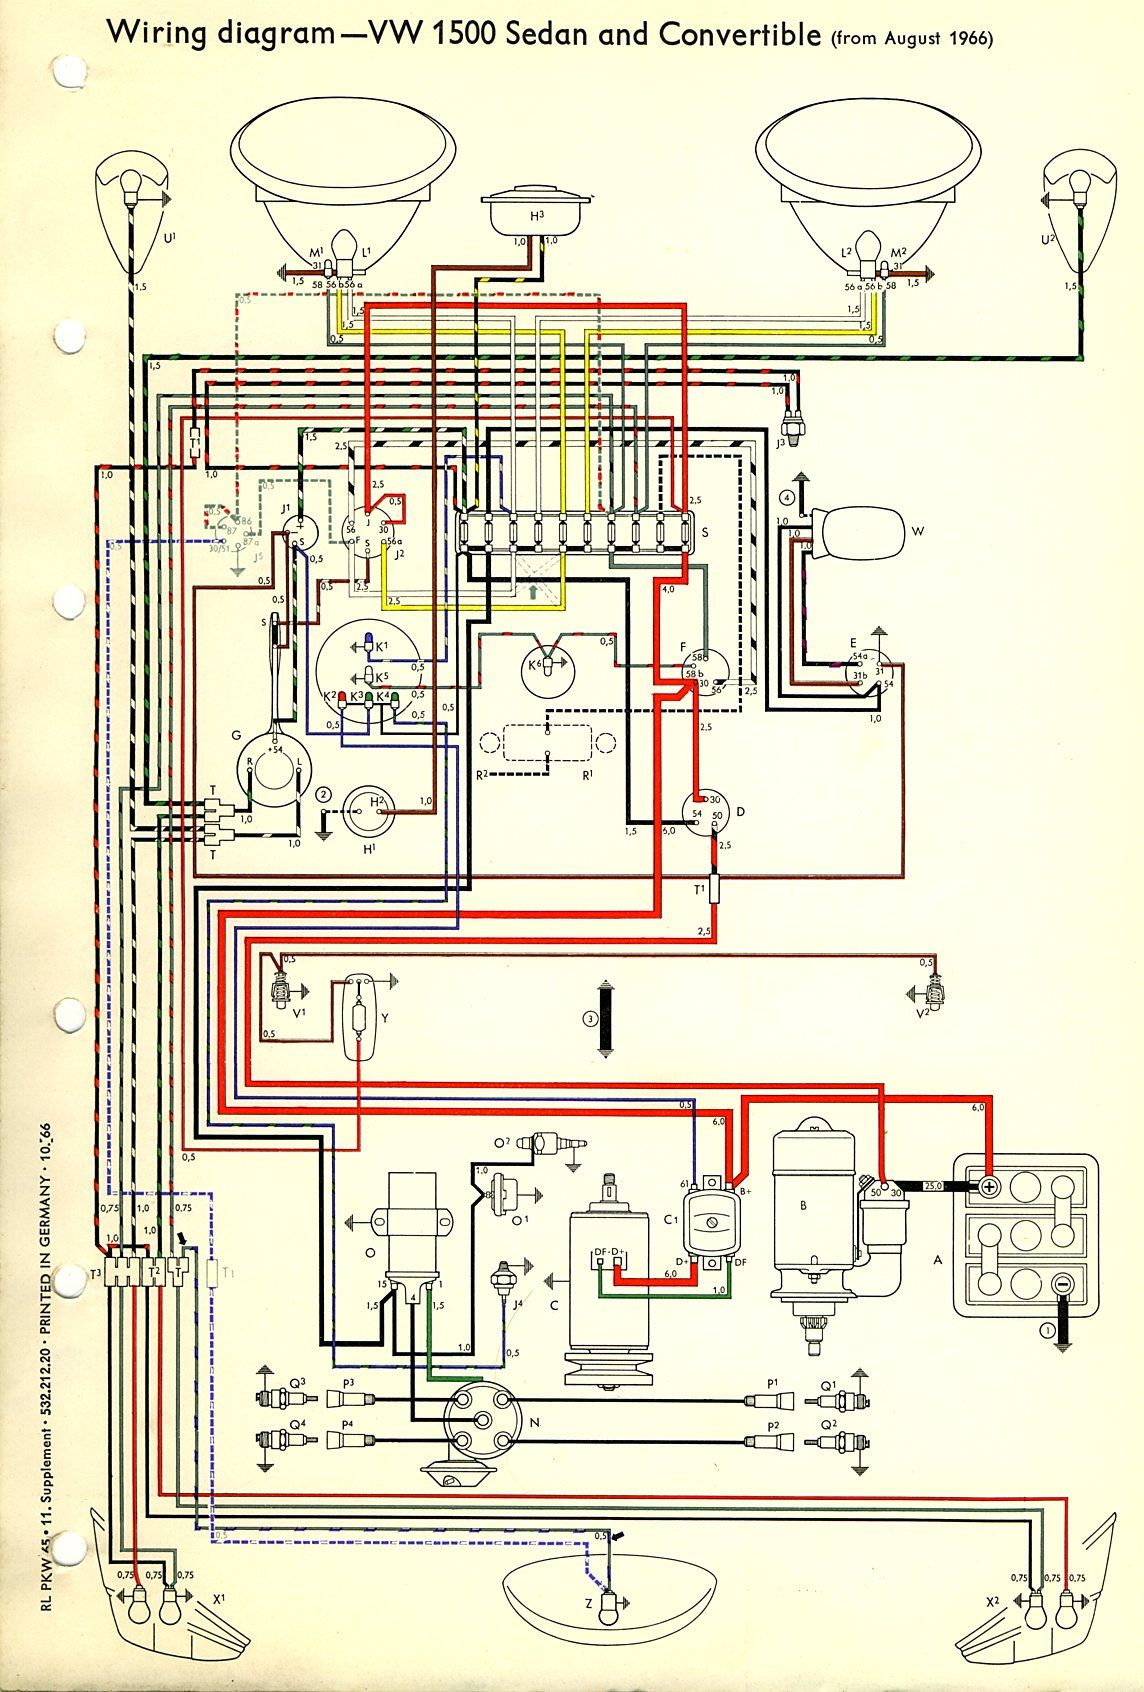 1967 Beetle Wiring Diagram Vw beetles